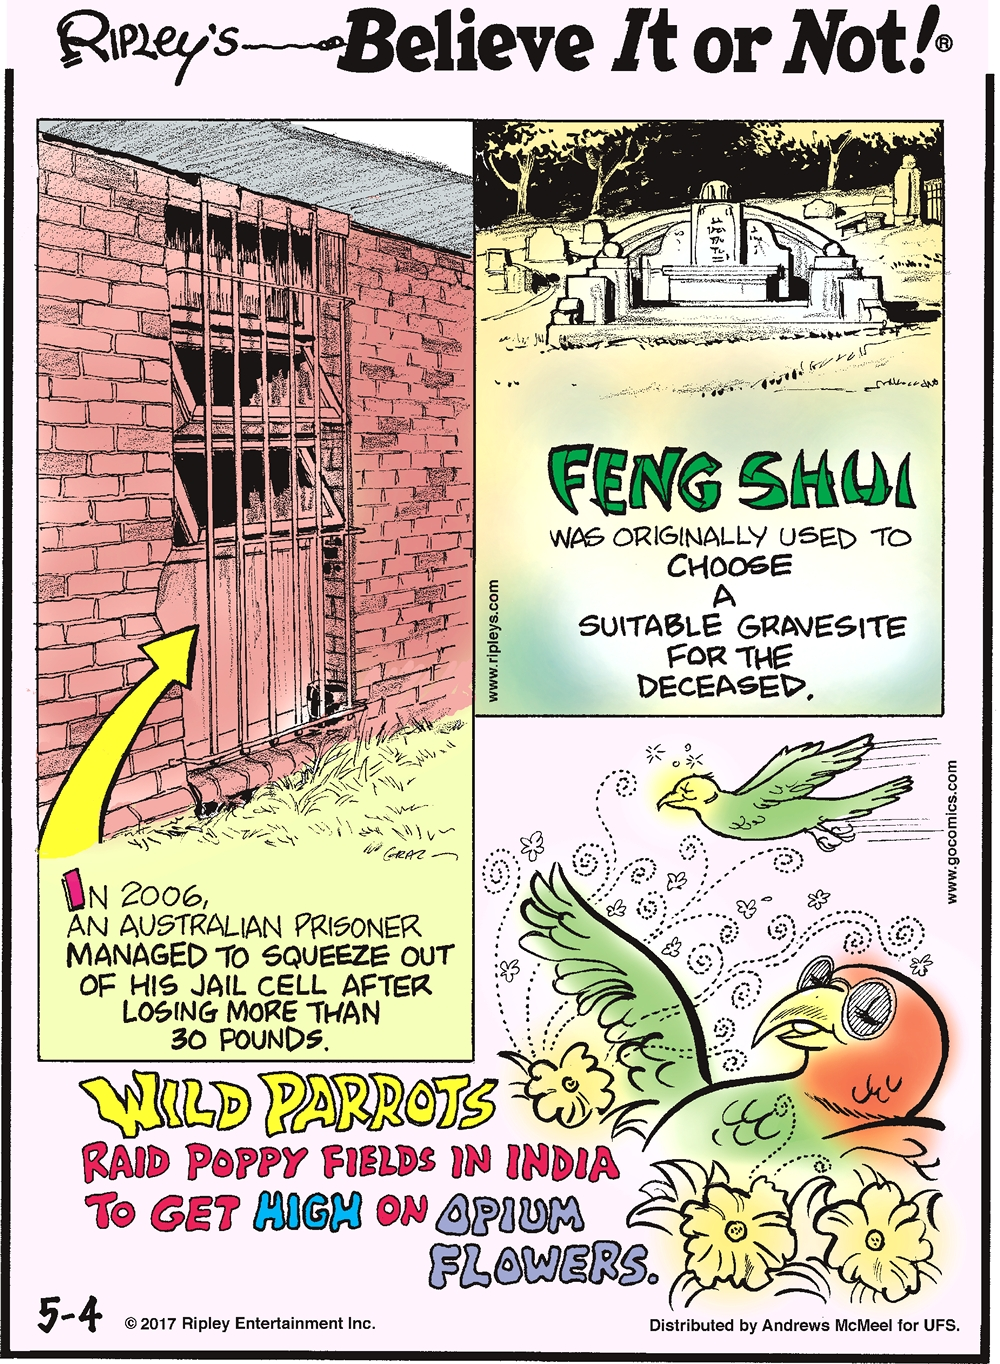 In 2006, an Australian prisoner managed to squeeze out of his jail cell after losing more than 30 pounds.-------------------- Feng Shui was originally used to choose a suitable gravesite for the deceased.-------------------- Wild parrots raid poppy fields in India to get high on opium flowers.